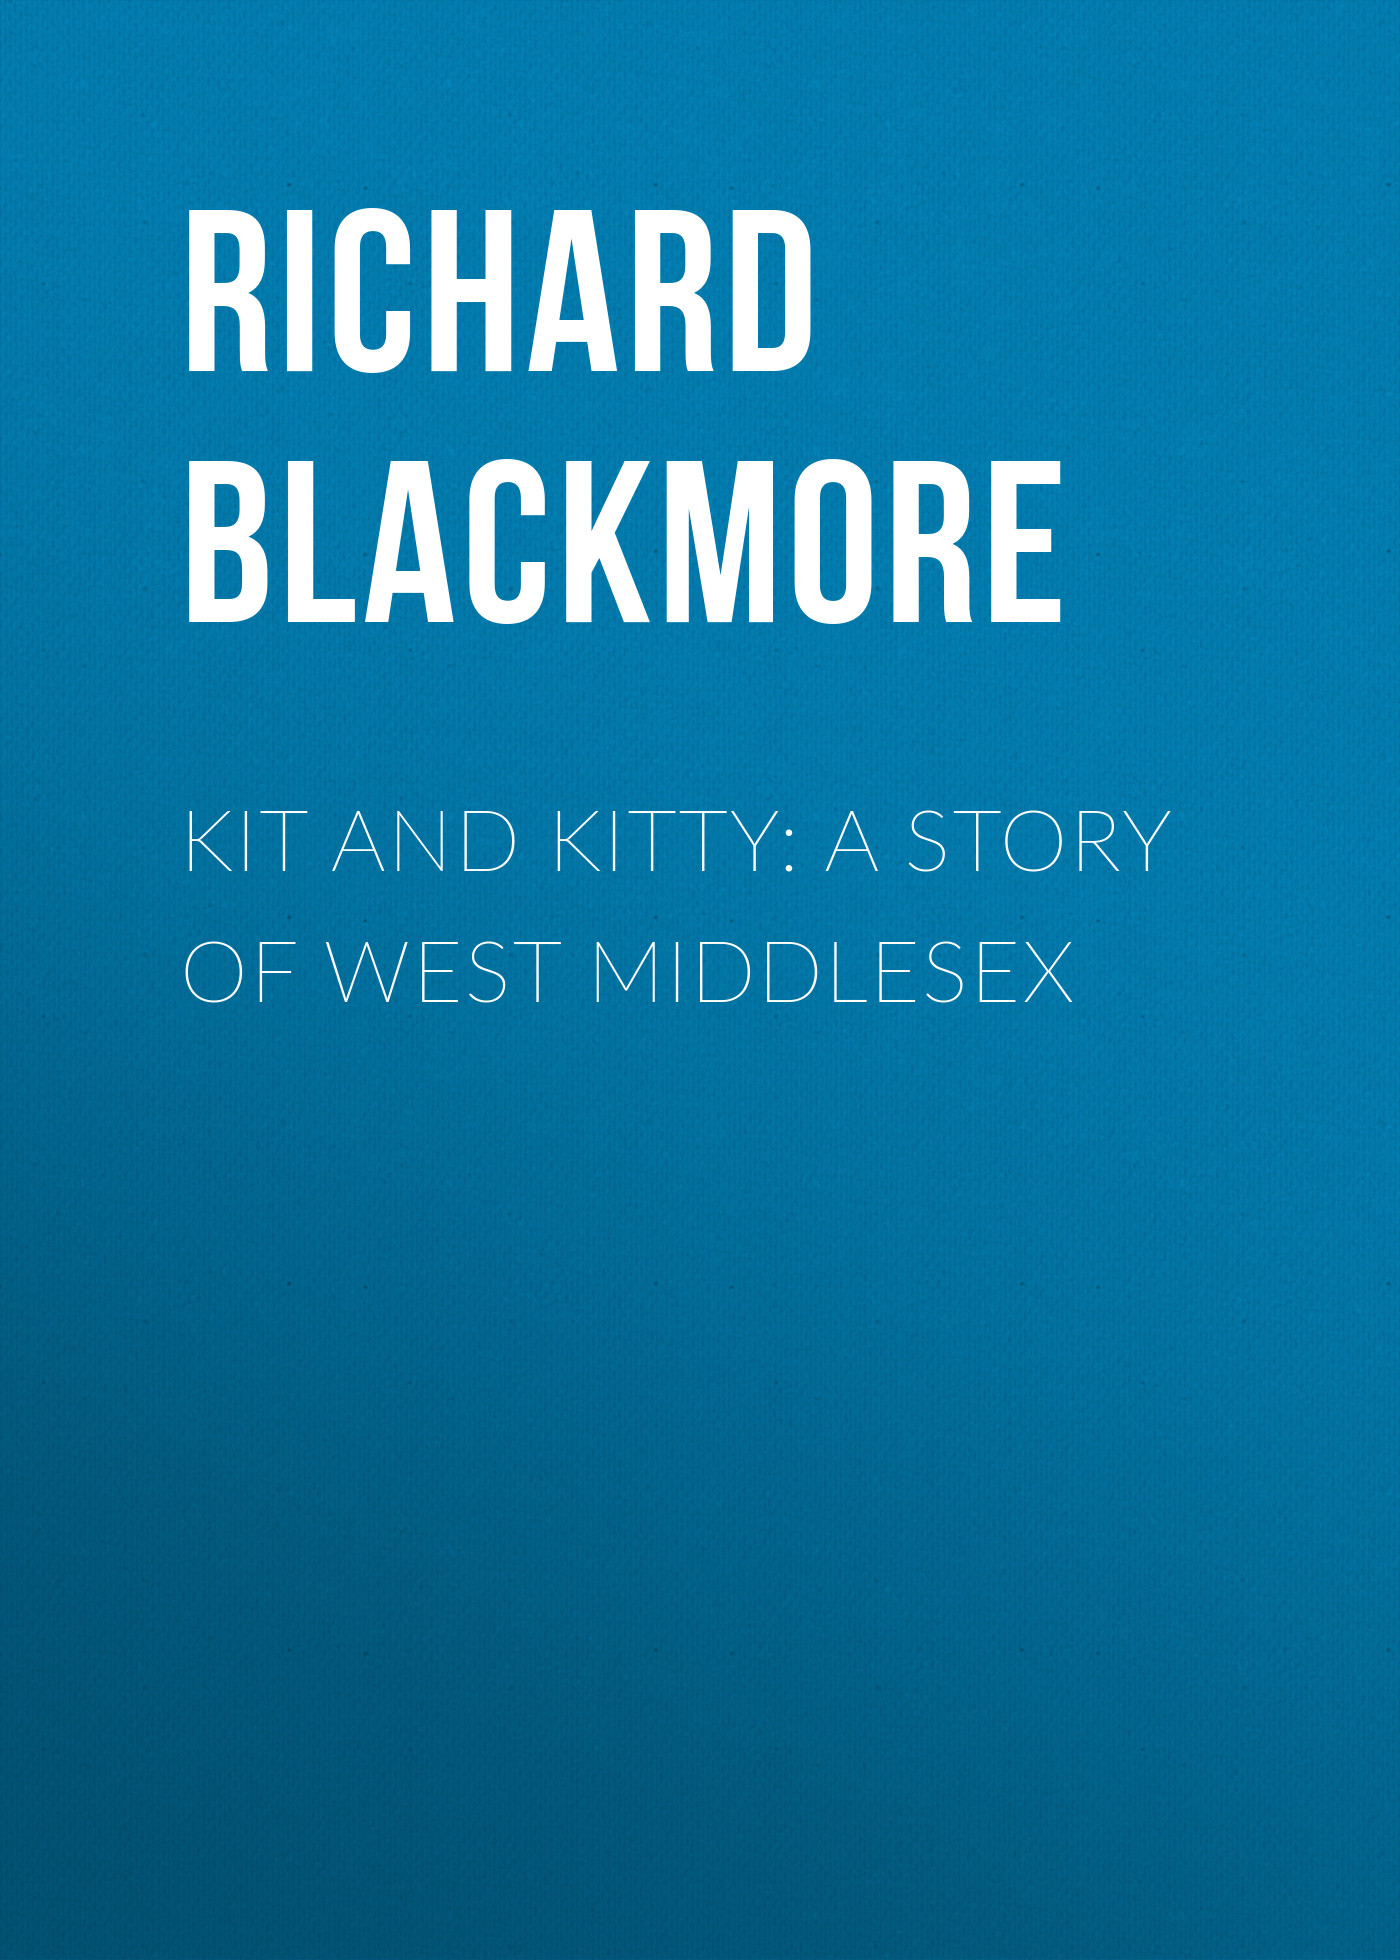 Blackmore Richard Doddridge Kit and Kitty: A Story of West Middlesex blackmore richard doddridge clara vaughan volume 1 of 3